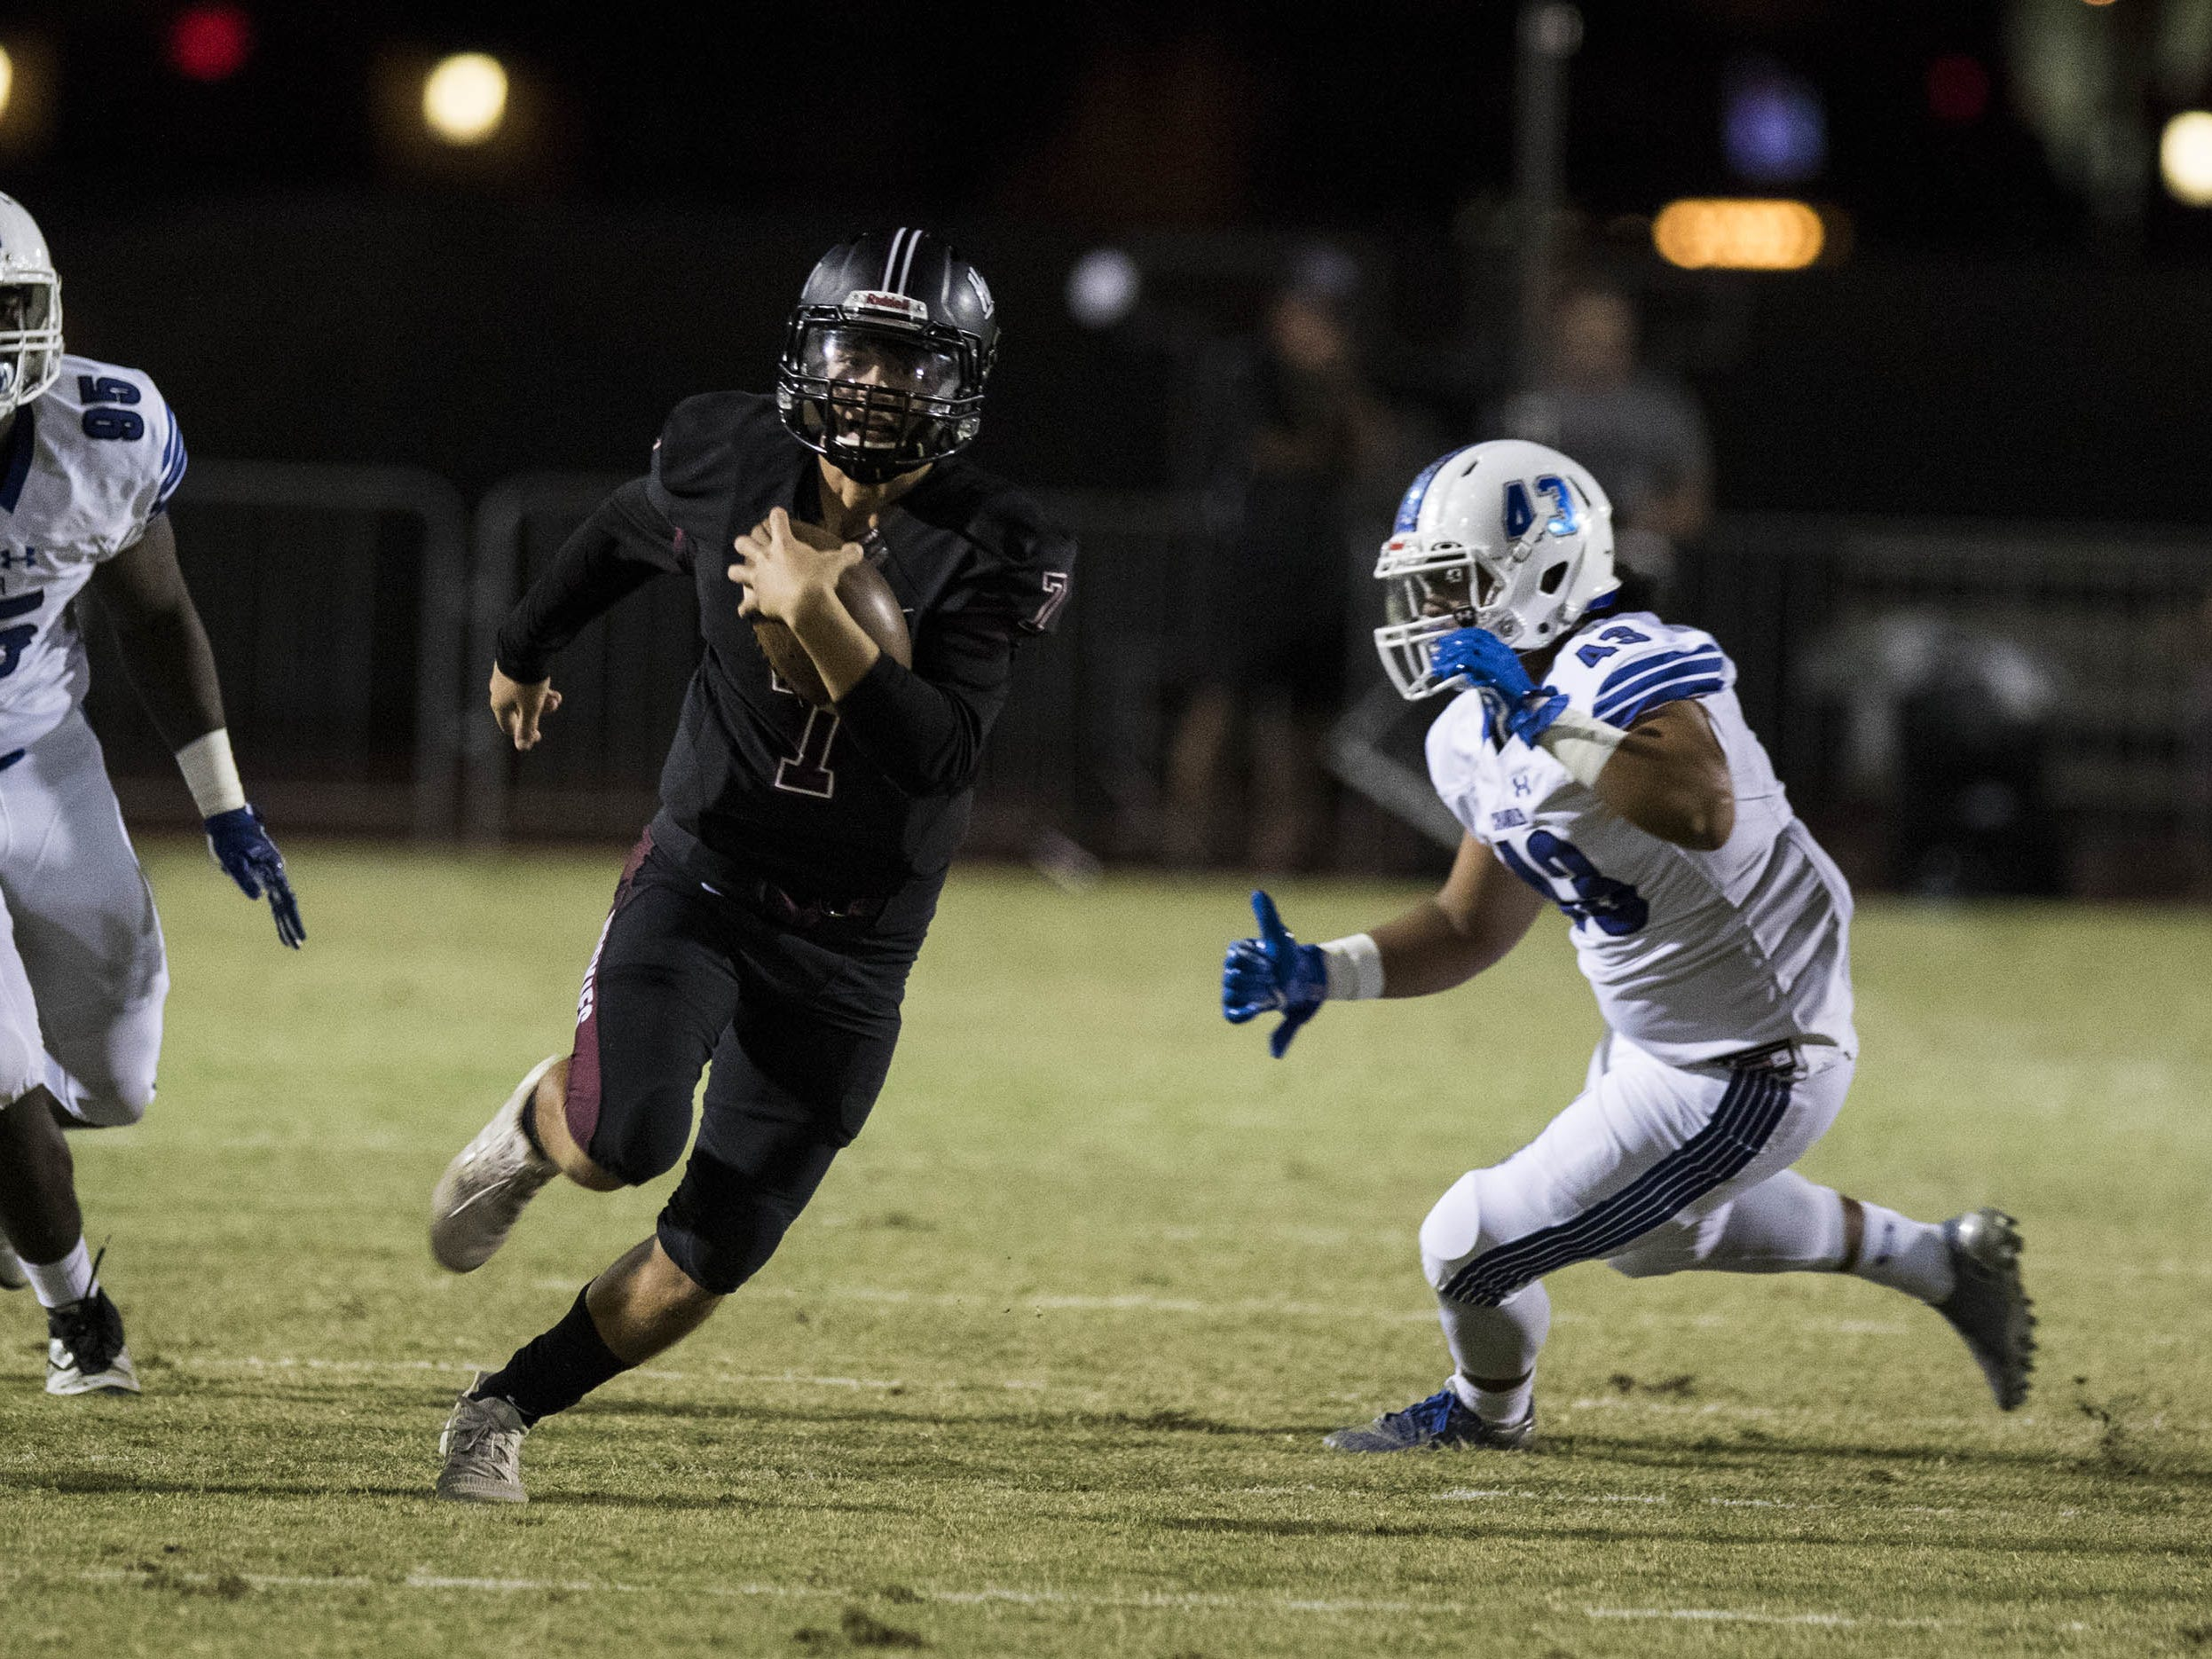 Hamilton's Nick Arvay finds running room against the Chandler defense during their game in Chandler, Friday, Oct. 26, 2018. #azhsfb